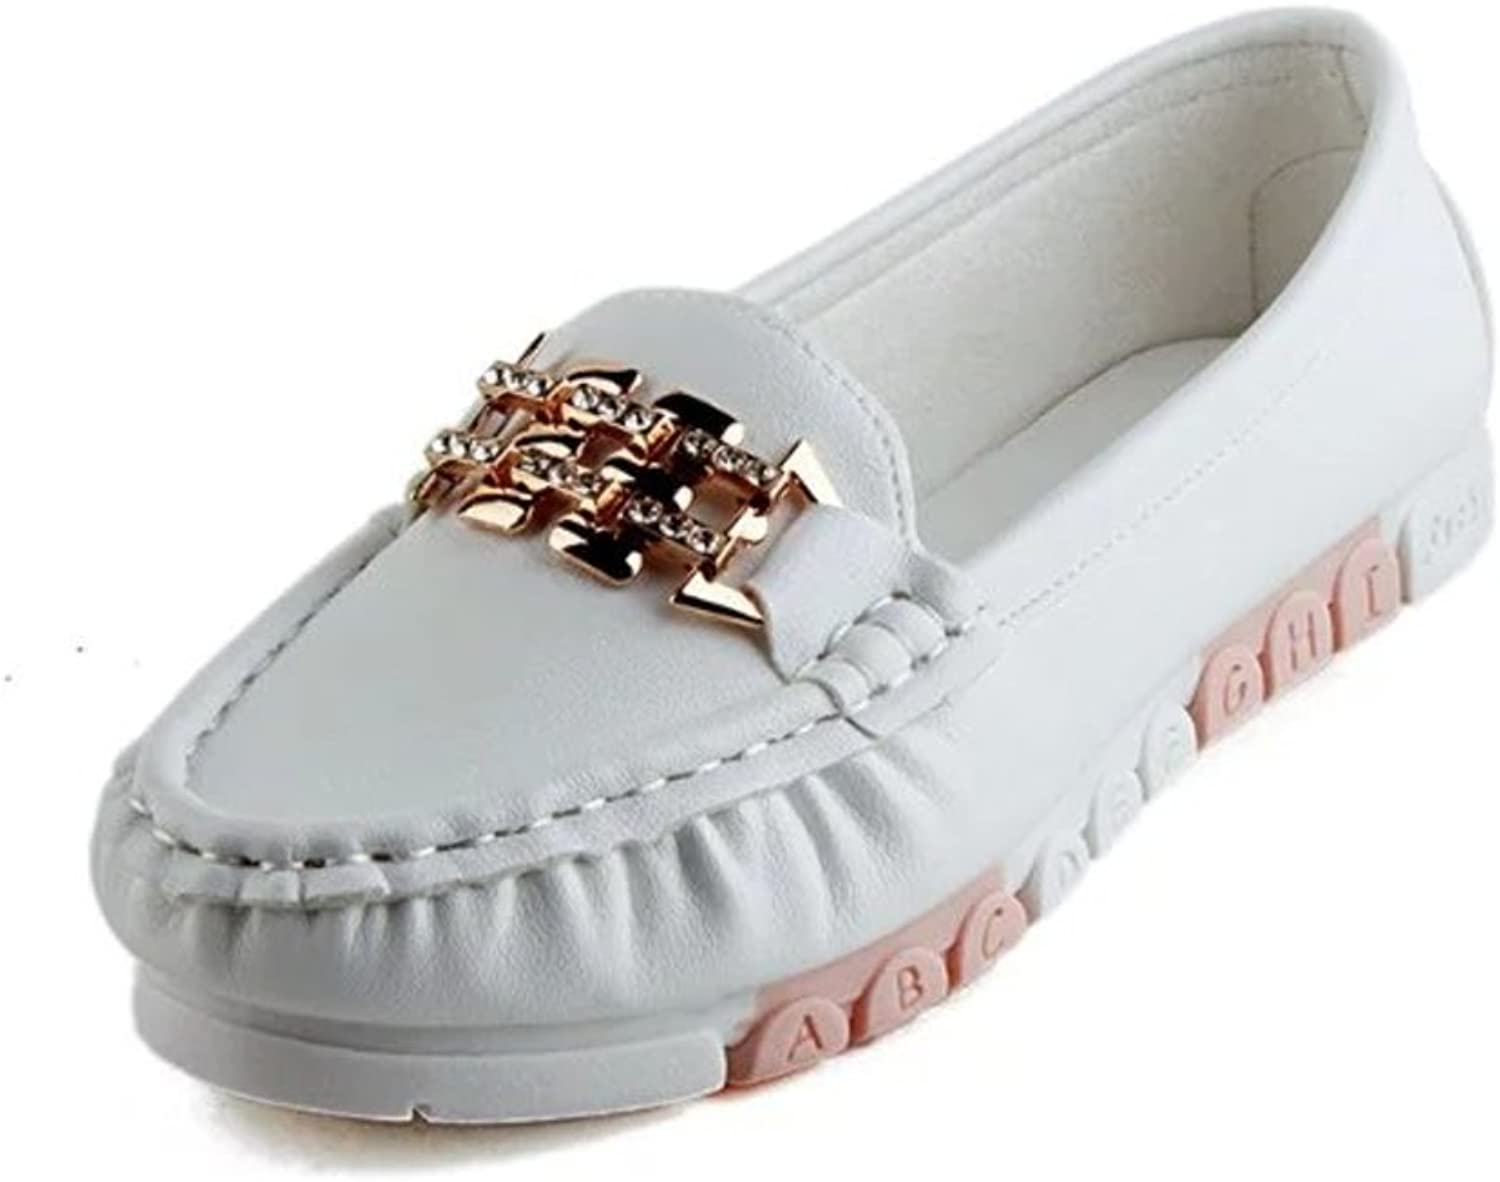 RHFDVGDS Spring and Autumn Lady Bean shoes Round-Headed Shallow Flats Pregnant Women shoes